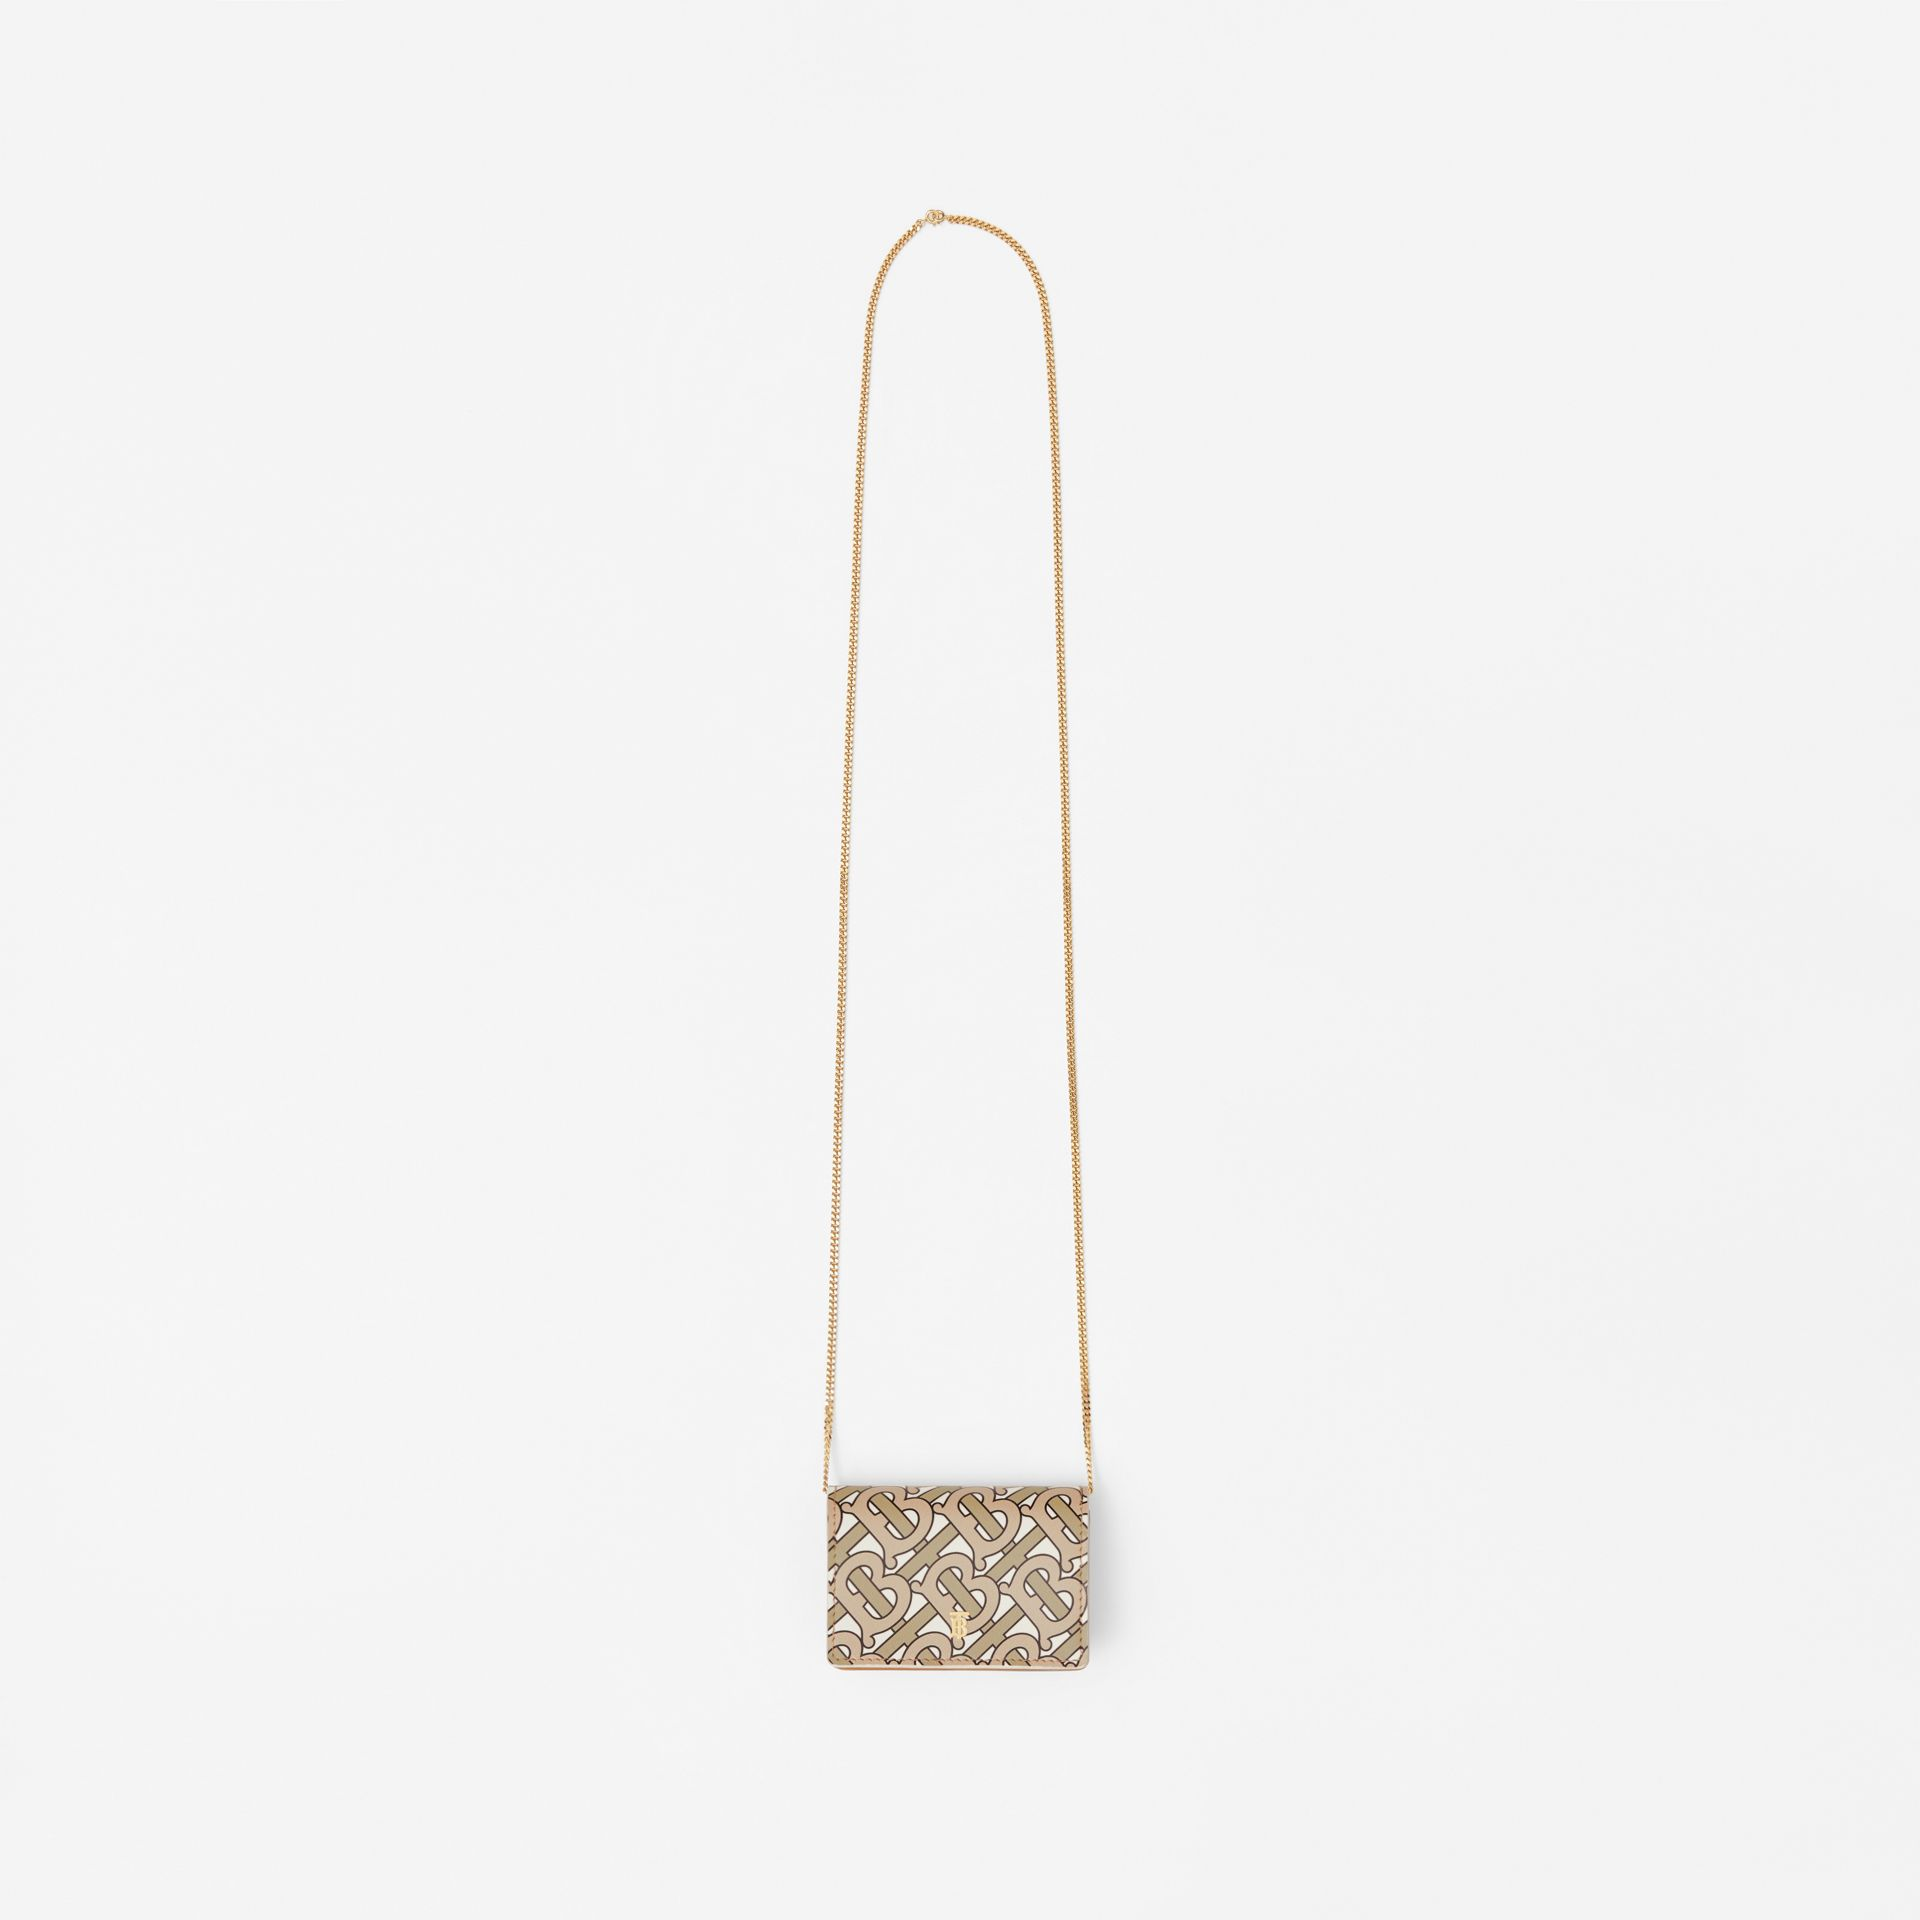 Porte-cartes Monogram avec sangle amovible (Beige) - Femme | Burberry Canada - photo de la galerie 3